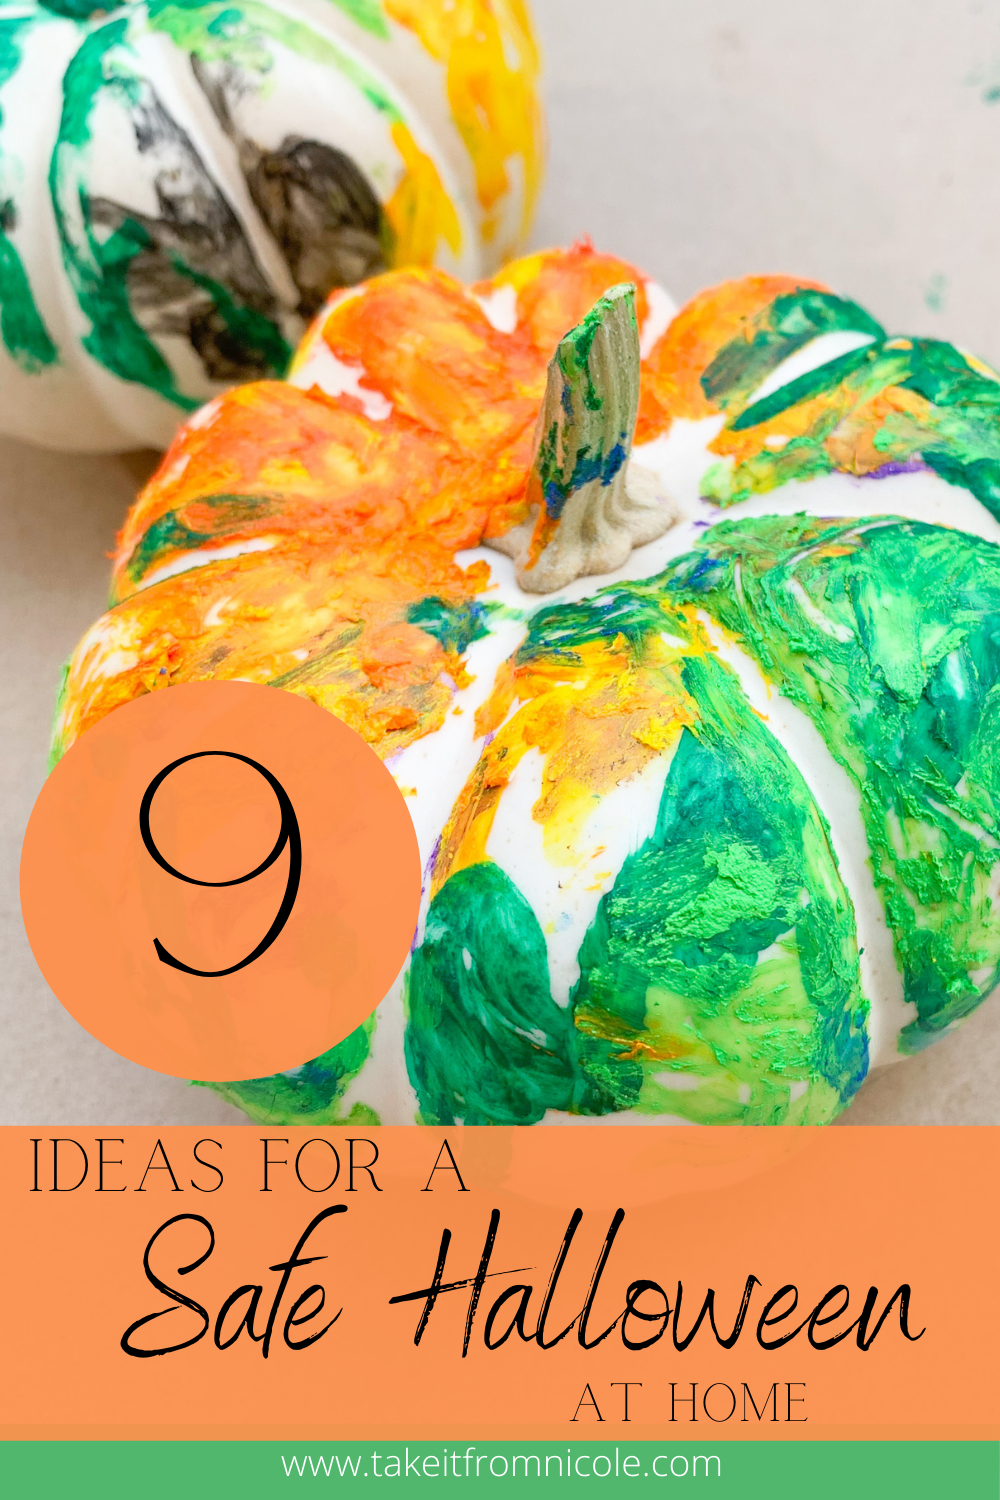 Halloween is going to be a bit different this year. Here are some fun ideas to have a safe, socially distant, spooky good time at home!